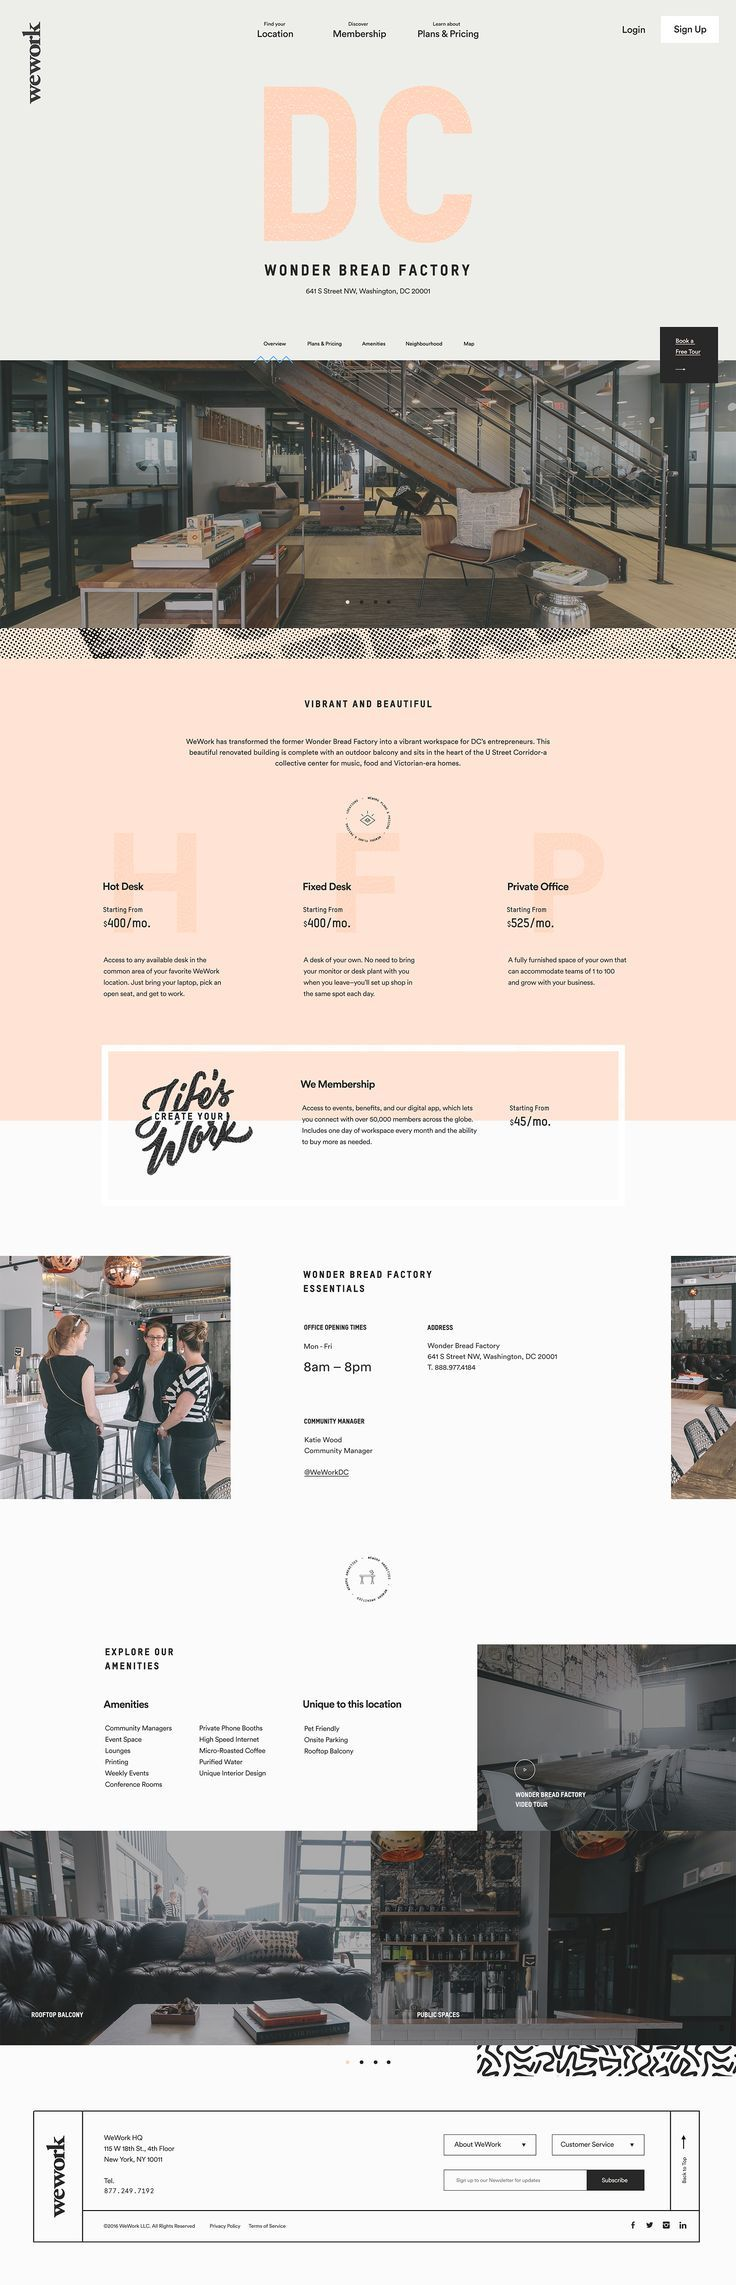 We work. nice simple page with alternating colors